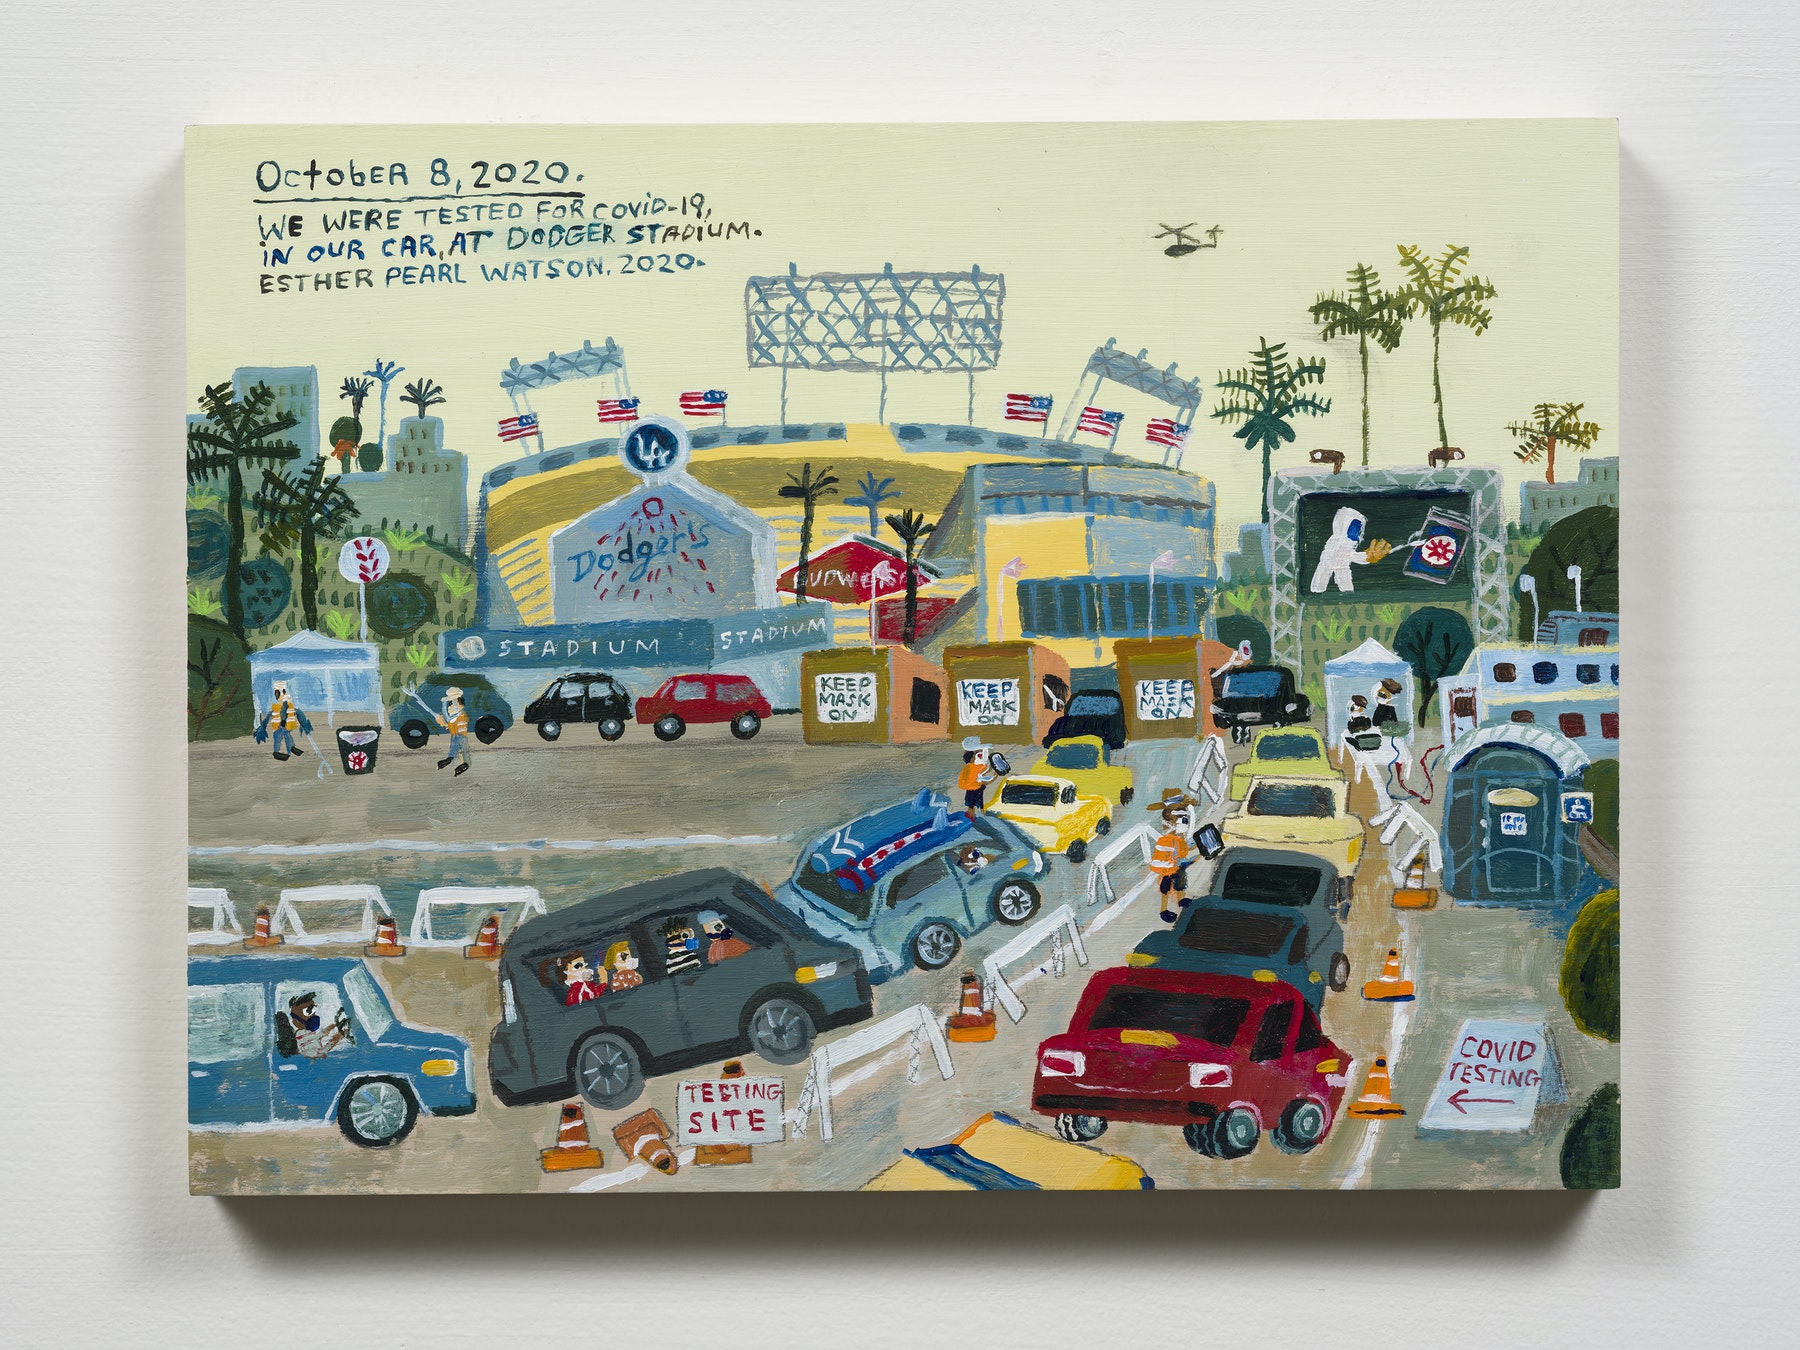 """Esther Pearl Watson """"October 8, Covid Test, Dodger Stadium,"""" 2020 Acrylic with pencil on panel 9 x 12"""" [HxW] (22.86 x 30.48 cm) Inventory #EPW349 Courtesy of the artist and Vielmetter Los Angeles Photo credit: Jeff Mclane"""